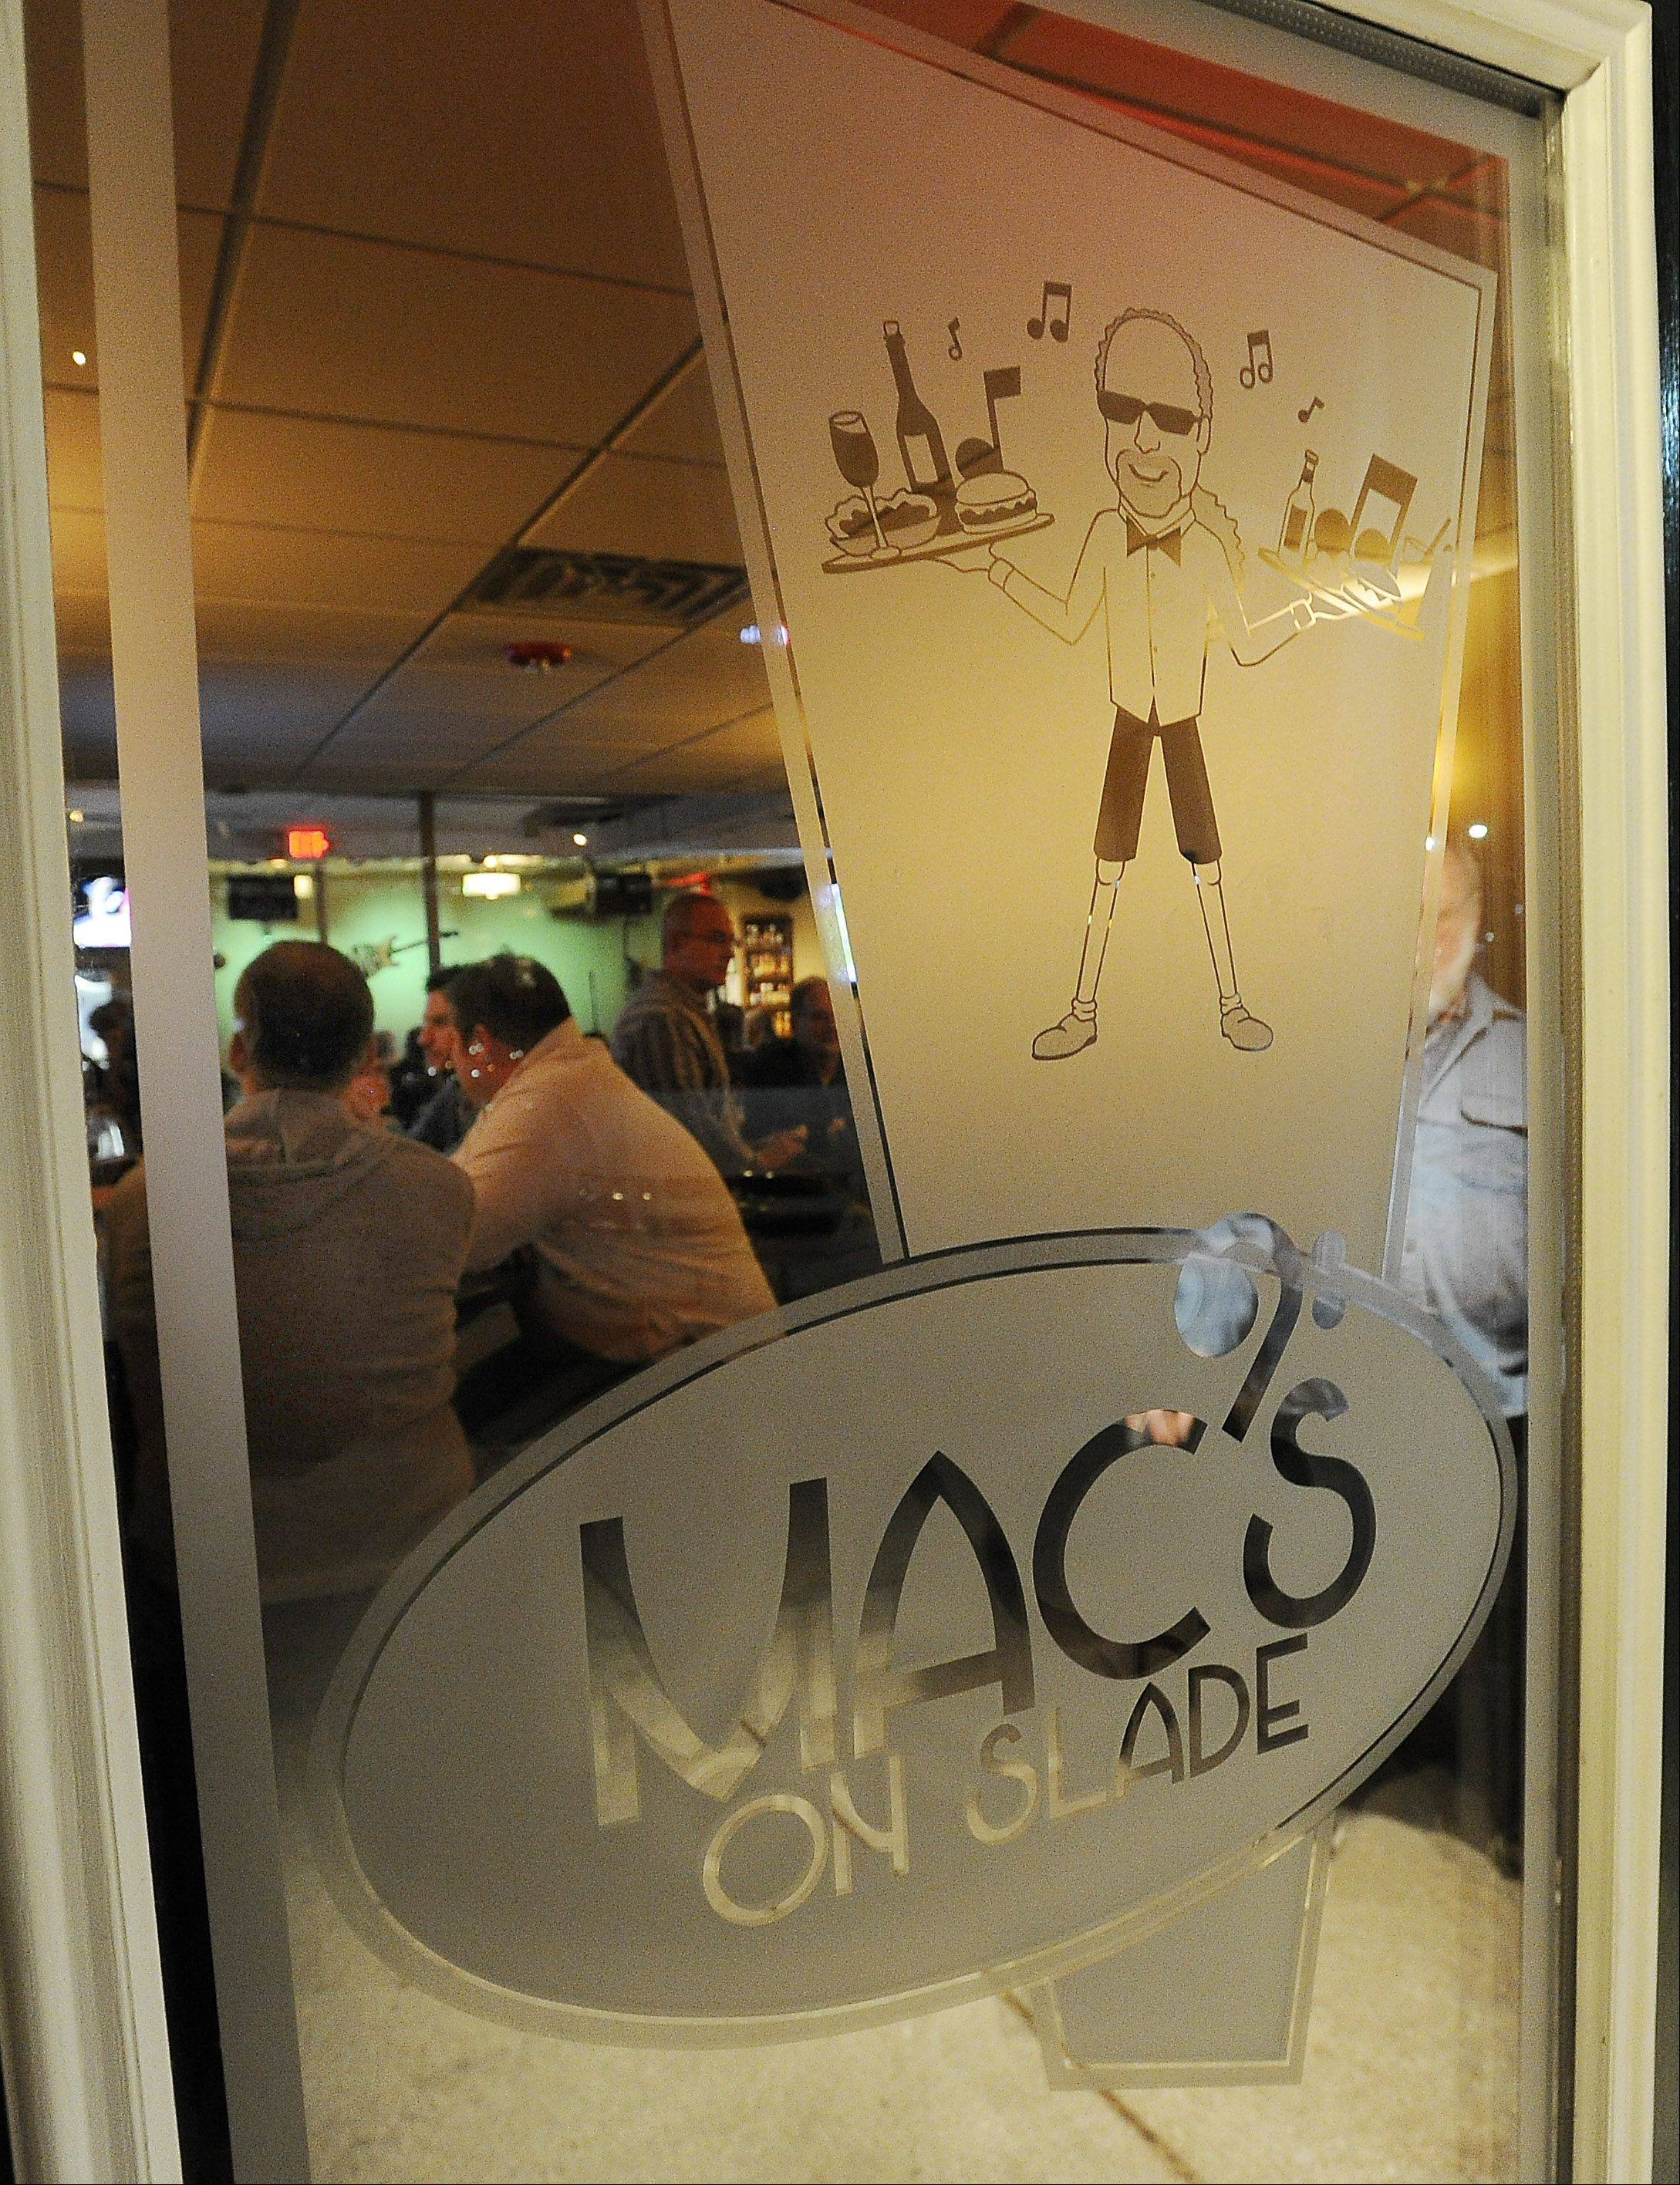 The owner's likeness welcomes patrons to Mac's on Slade, a new music-centric bar in downtown Palatine.